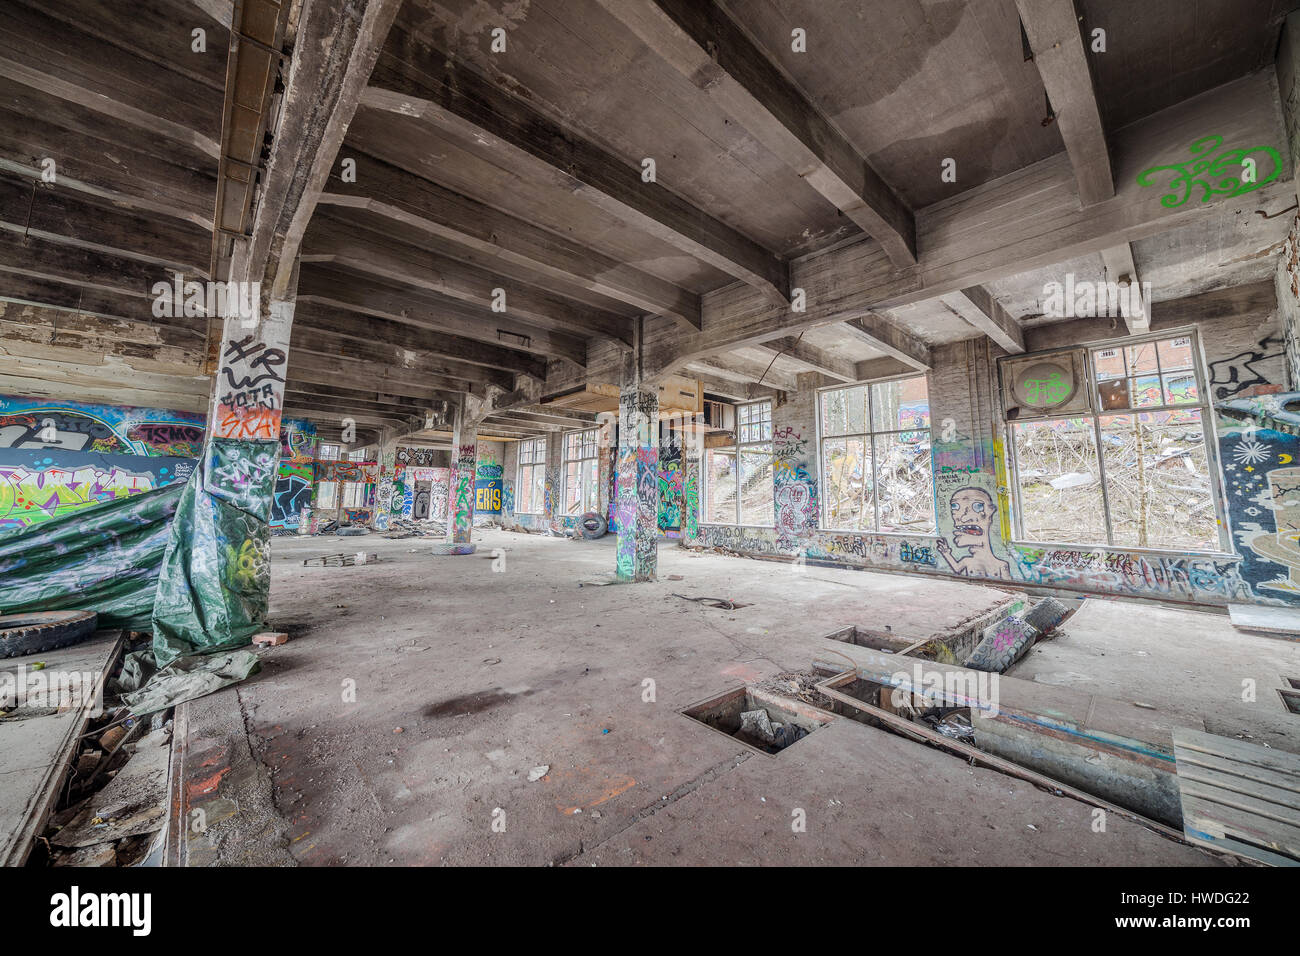 Abandoned old factory building - Stock Image